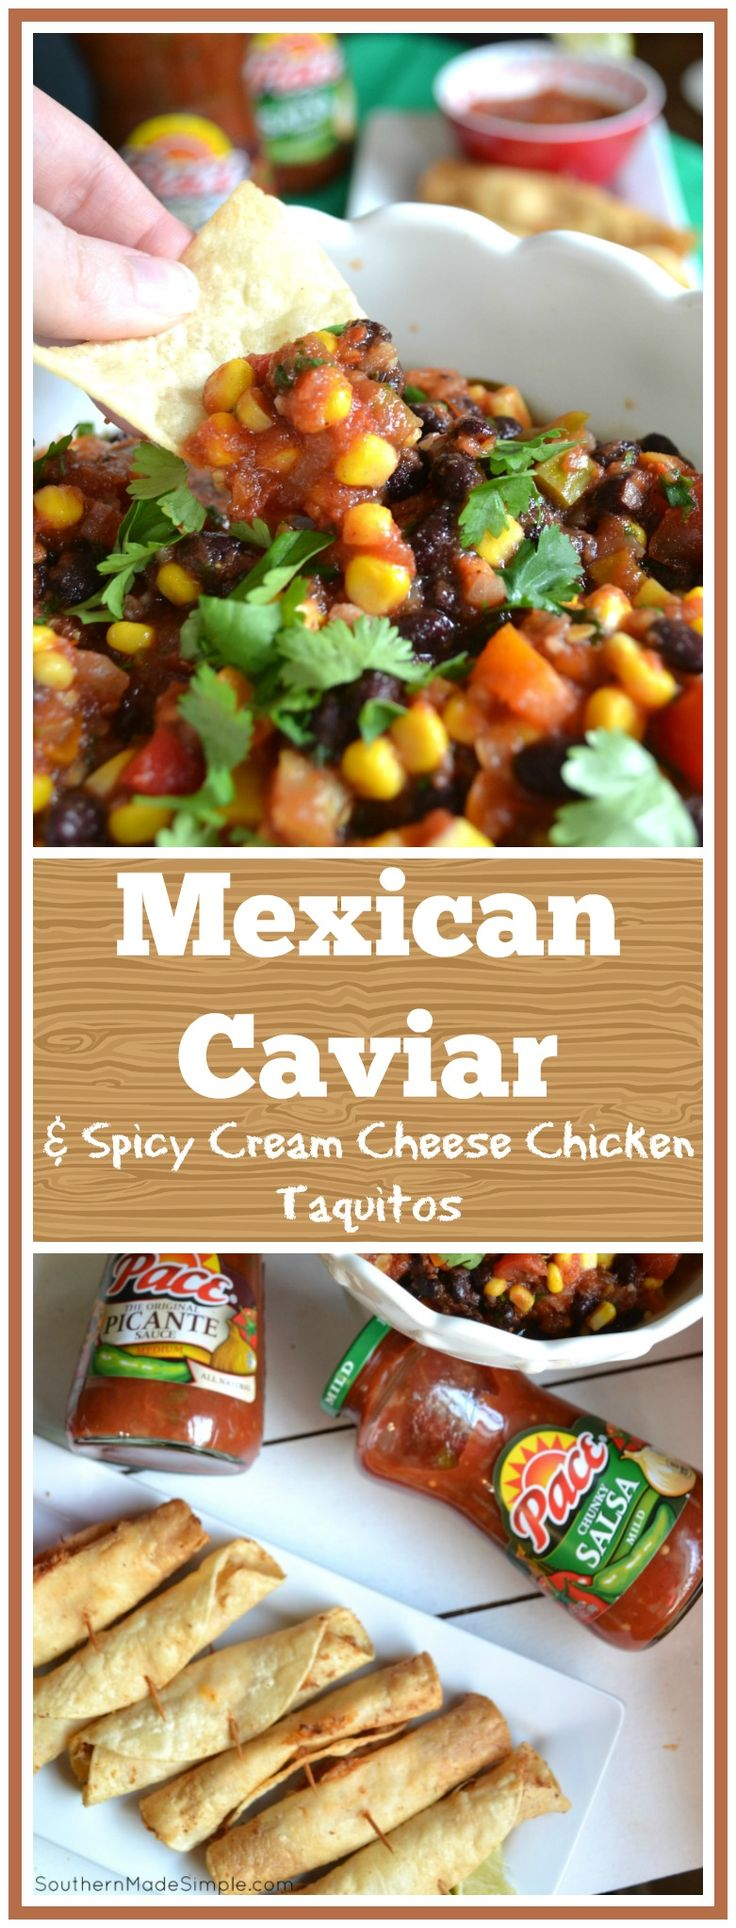 """""""Kickoff"""" Mexican Caviar Dip is an AMAZING dip to kick off gameday on a winning note! Pair it with homemade spicy cream cheese and chicken taquitos and you've got a recipe for awesomeness! #MakeGameTimeSaucy #ad"""